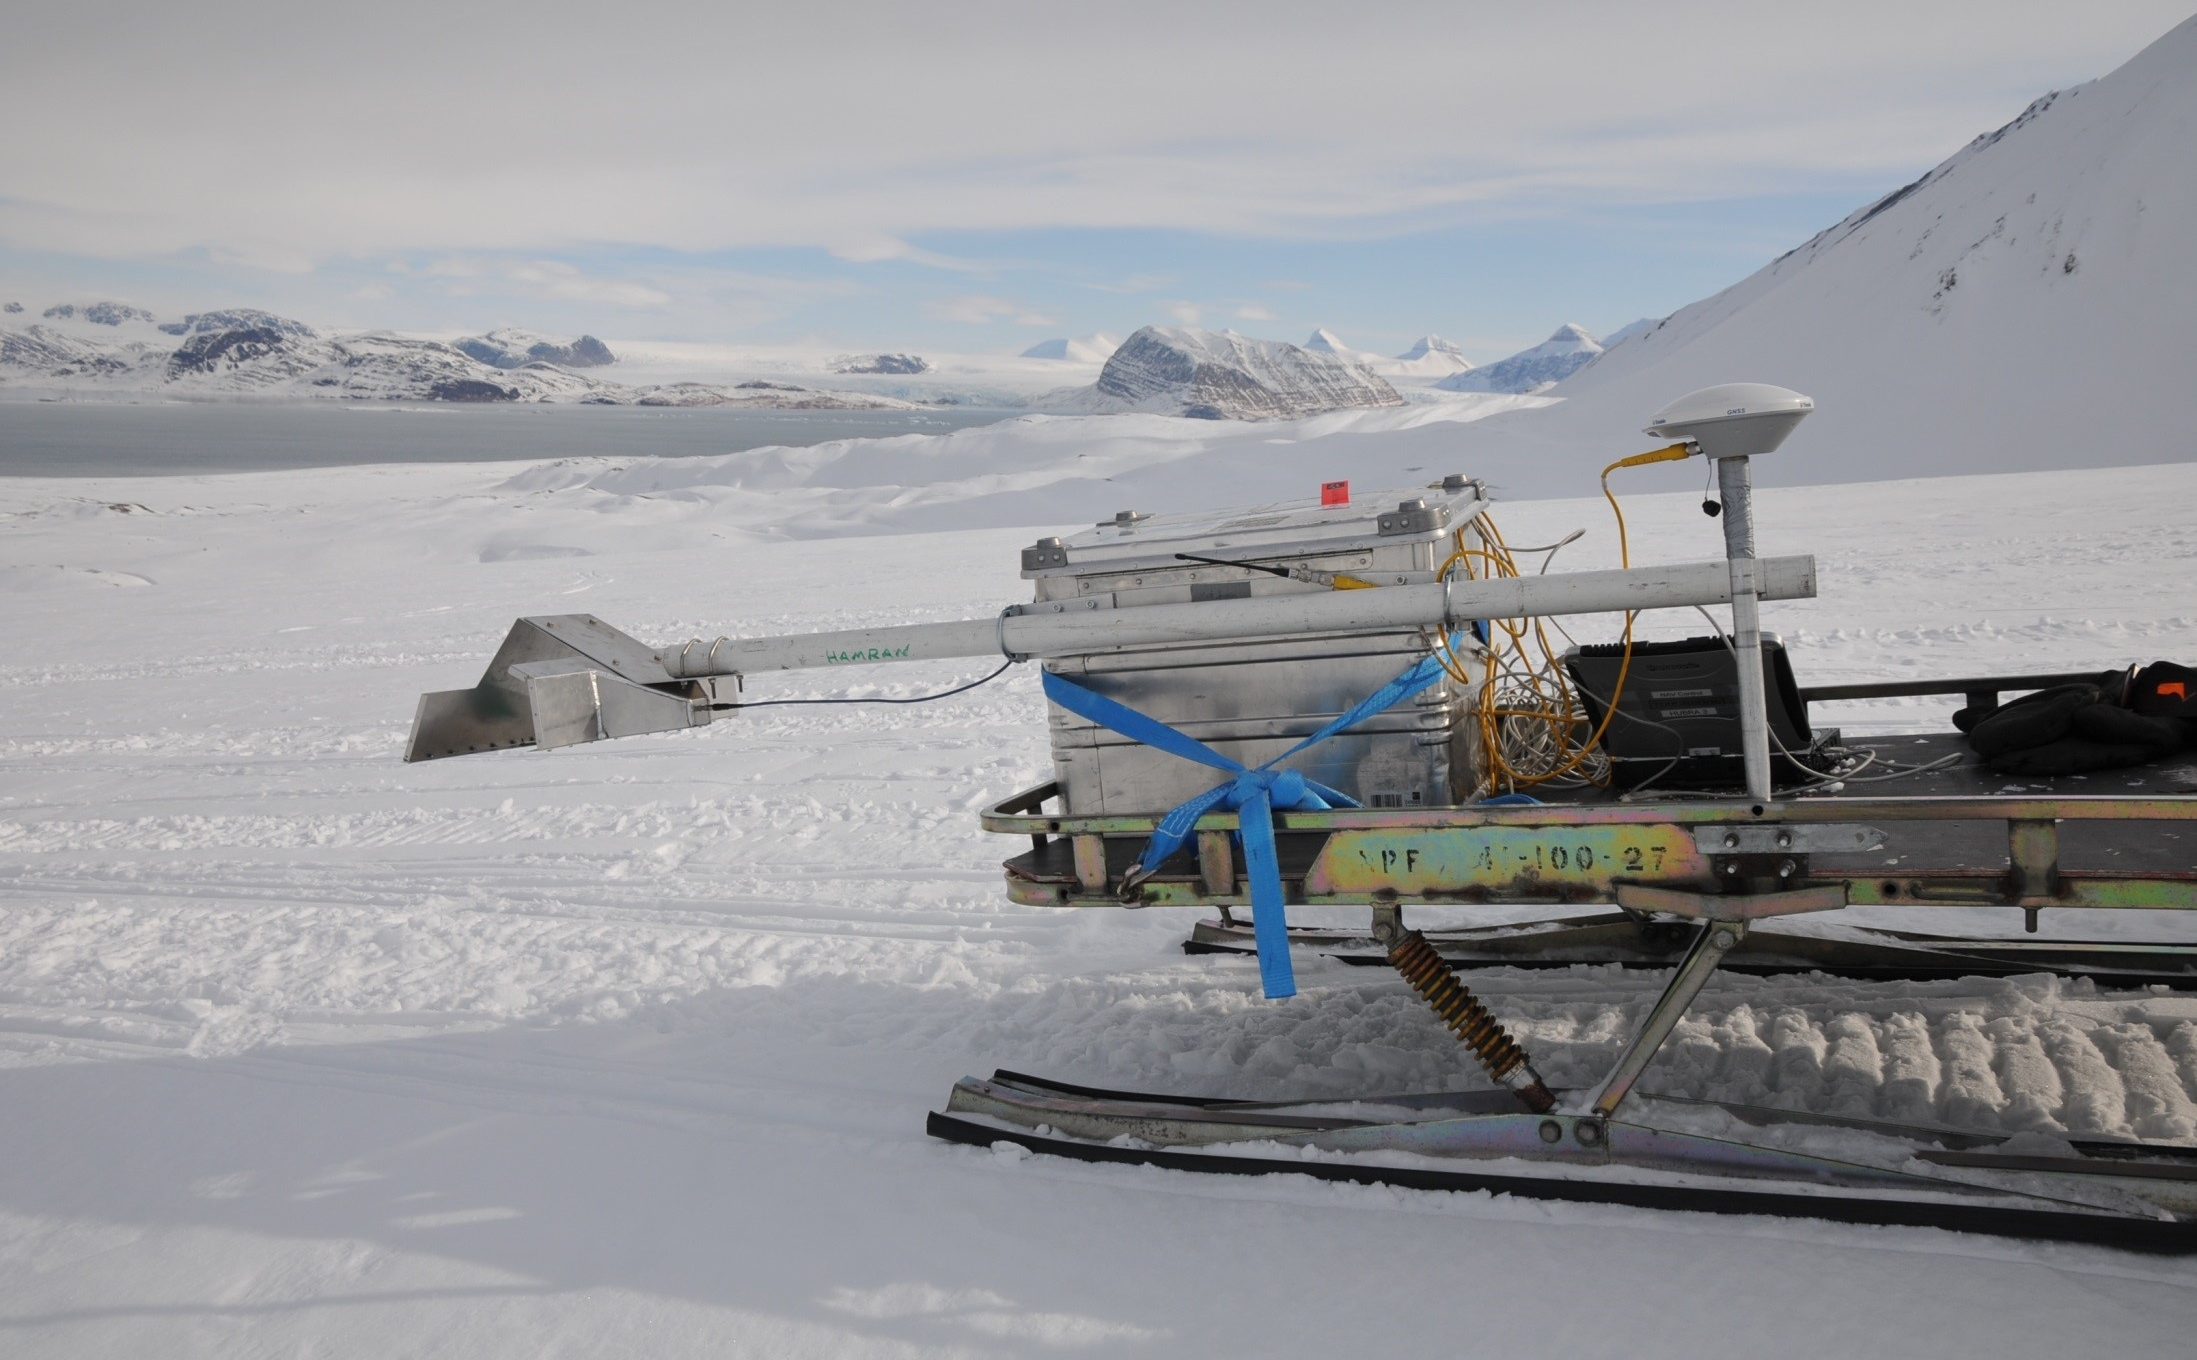 Photograph showing the prototype RIMFAX antenna attached to a snowmobile during tests in Svalbard, Norway.